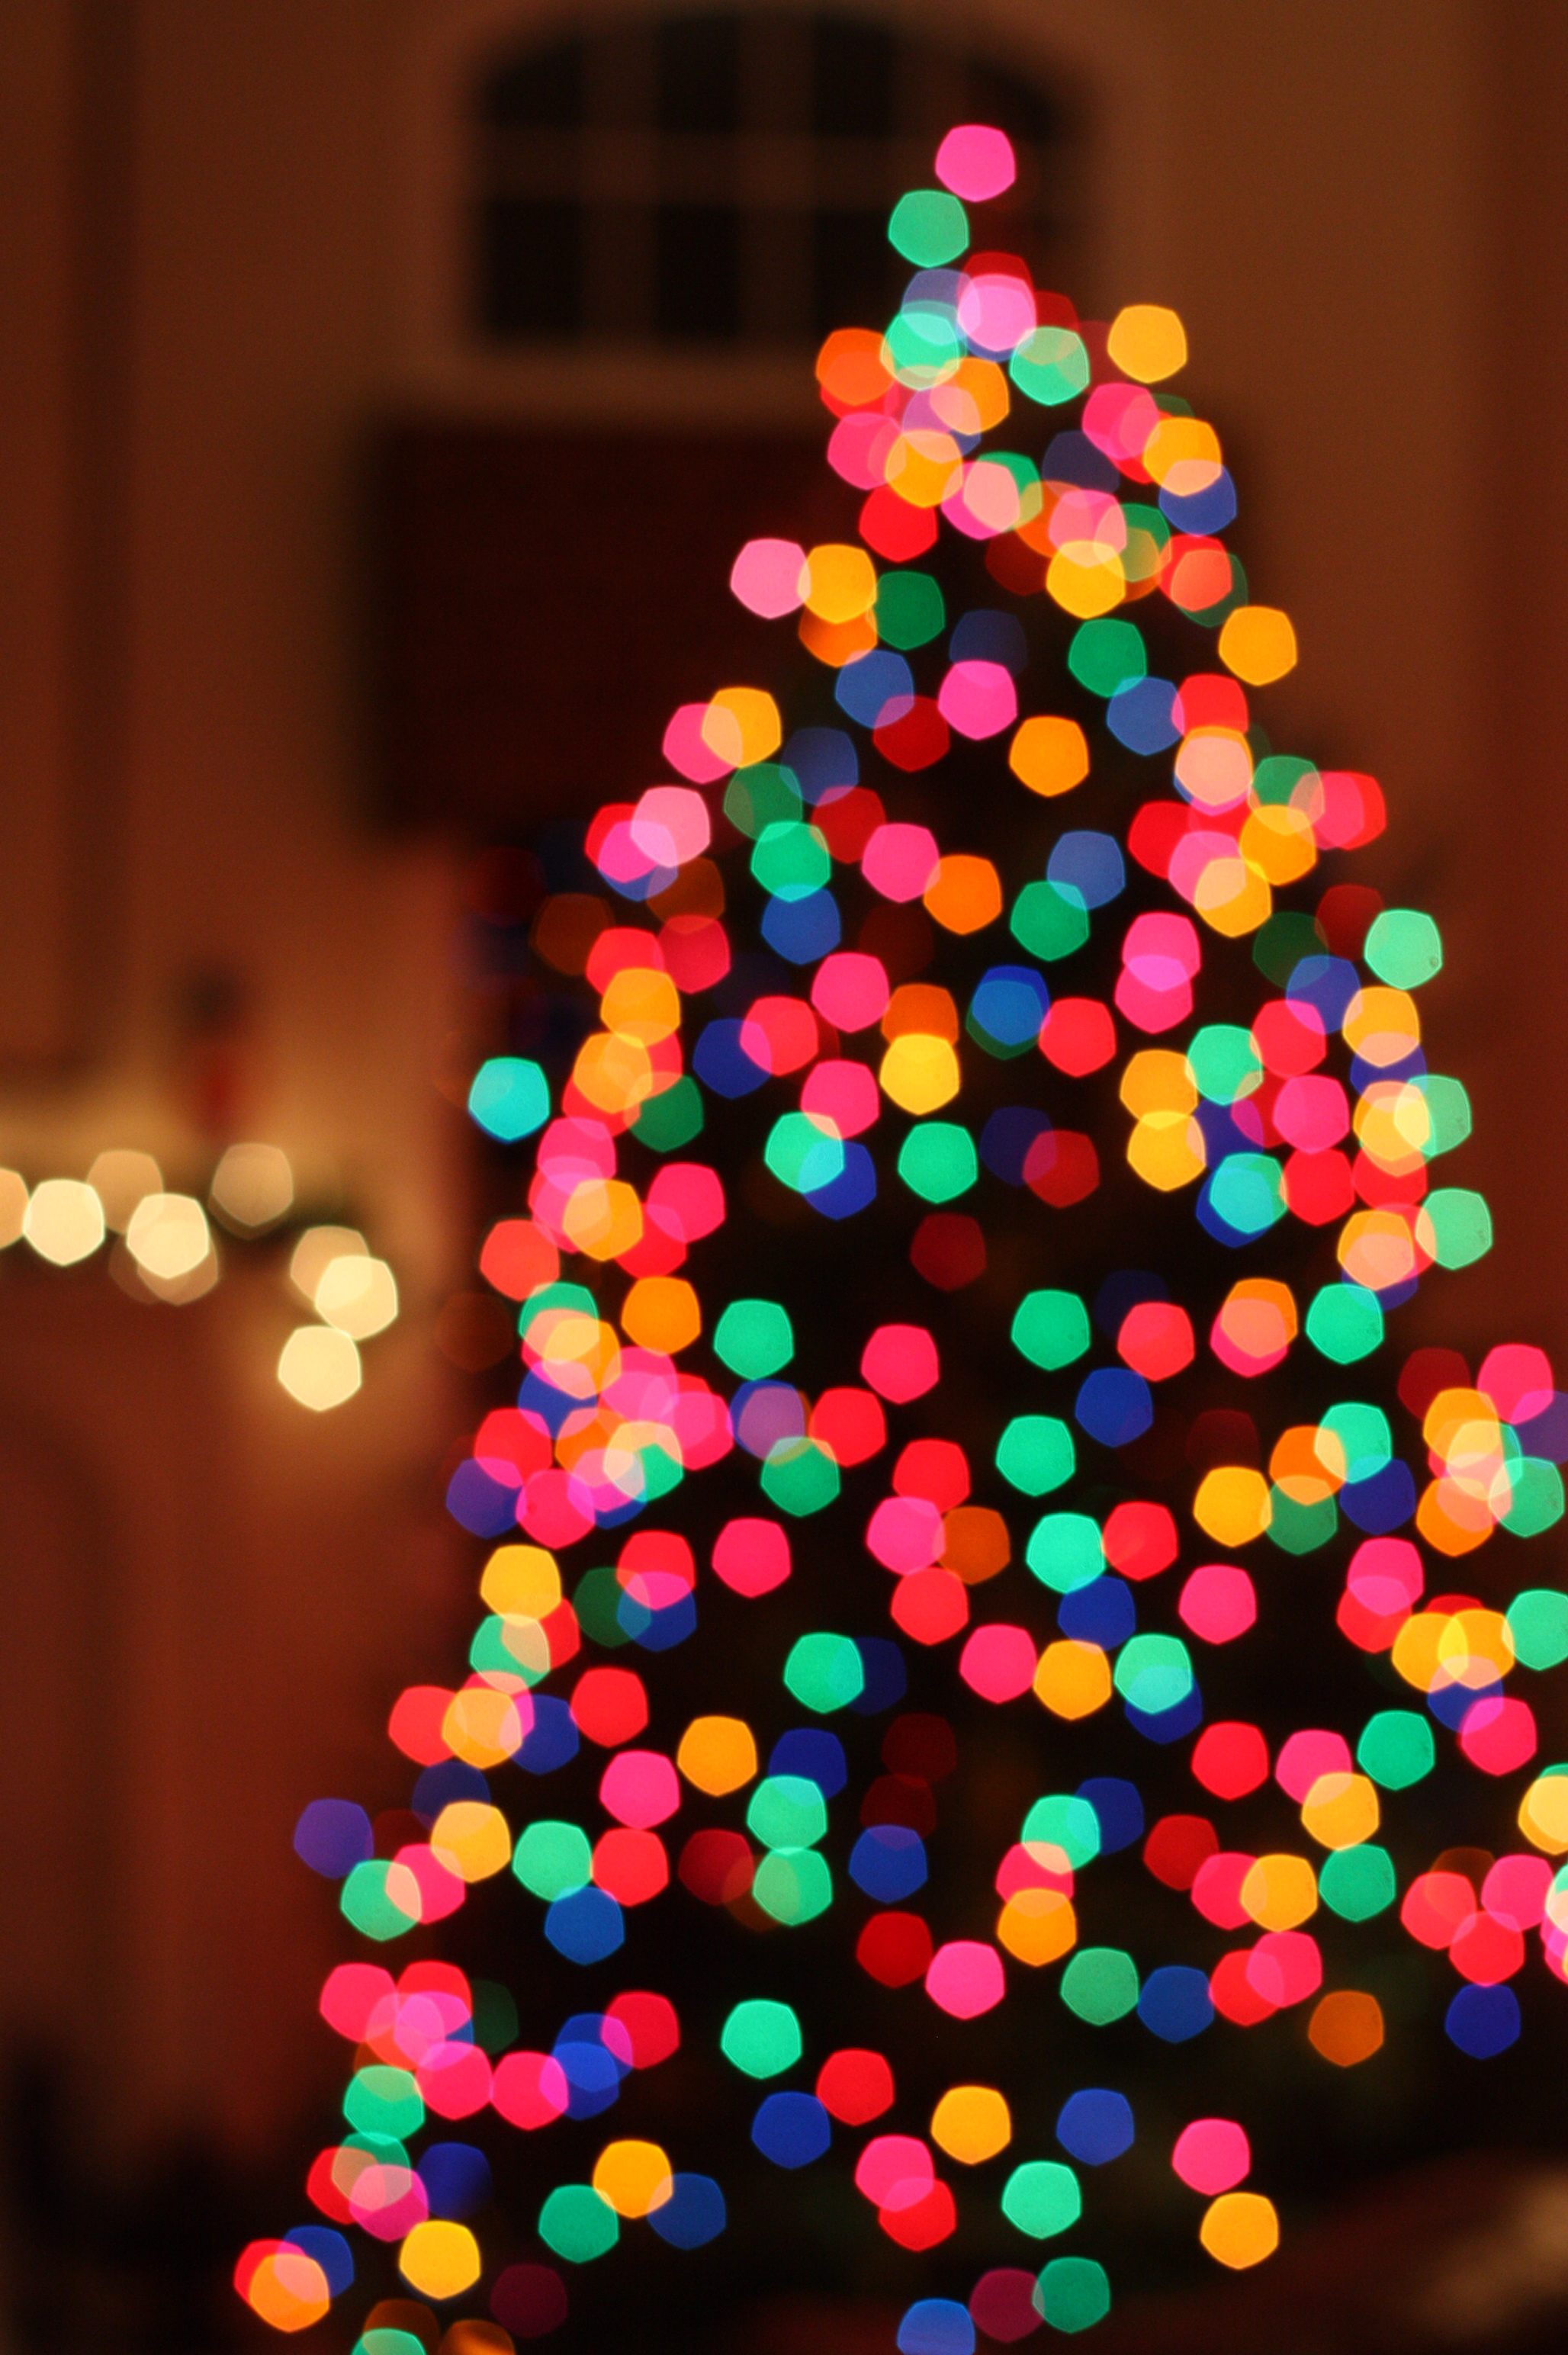 i am so looking forward to - Merry Christmas To All And To All A Good Night